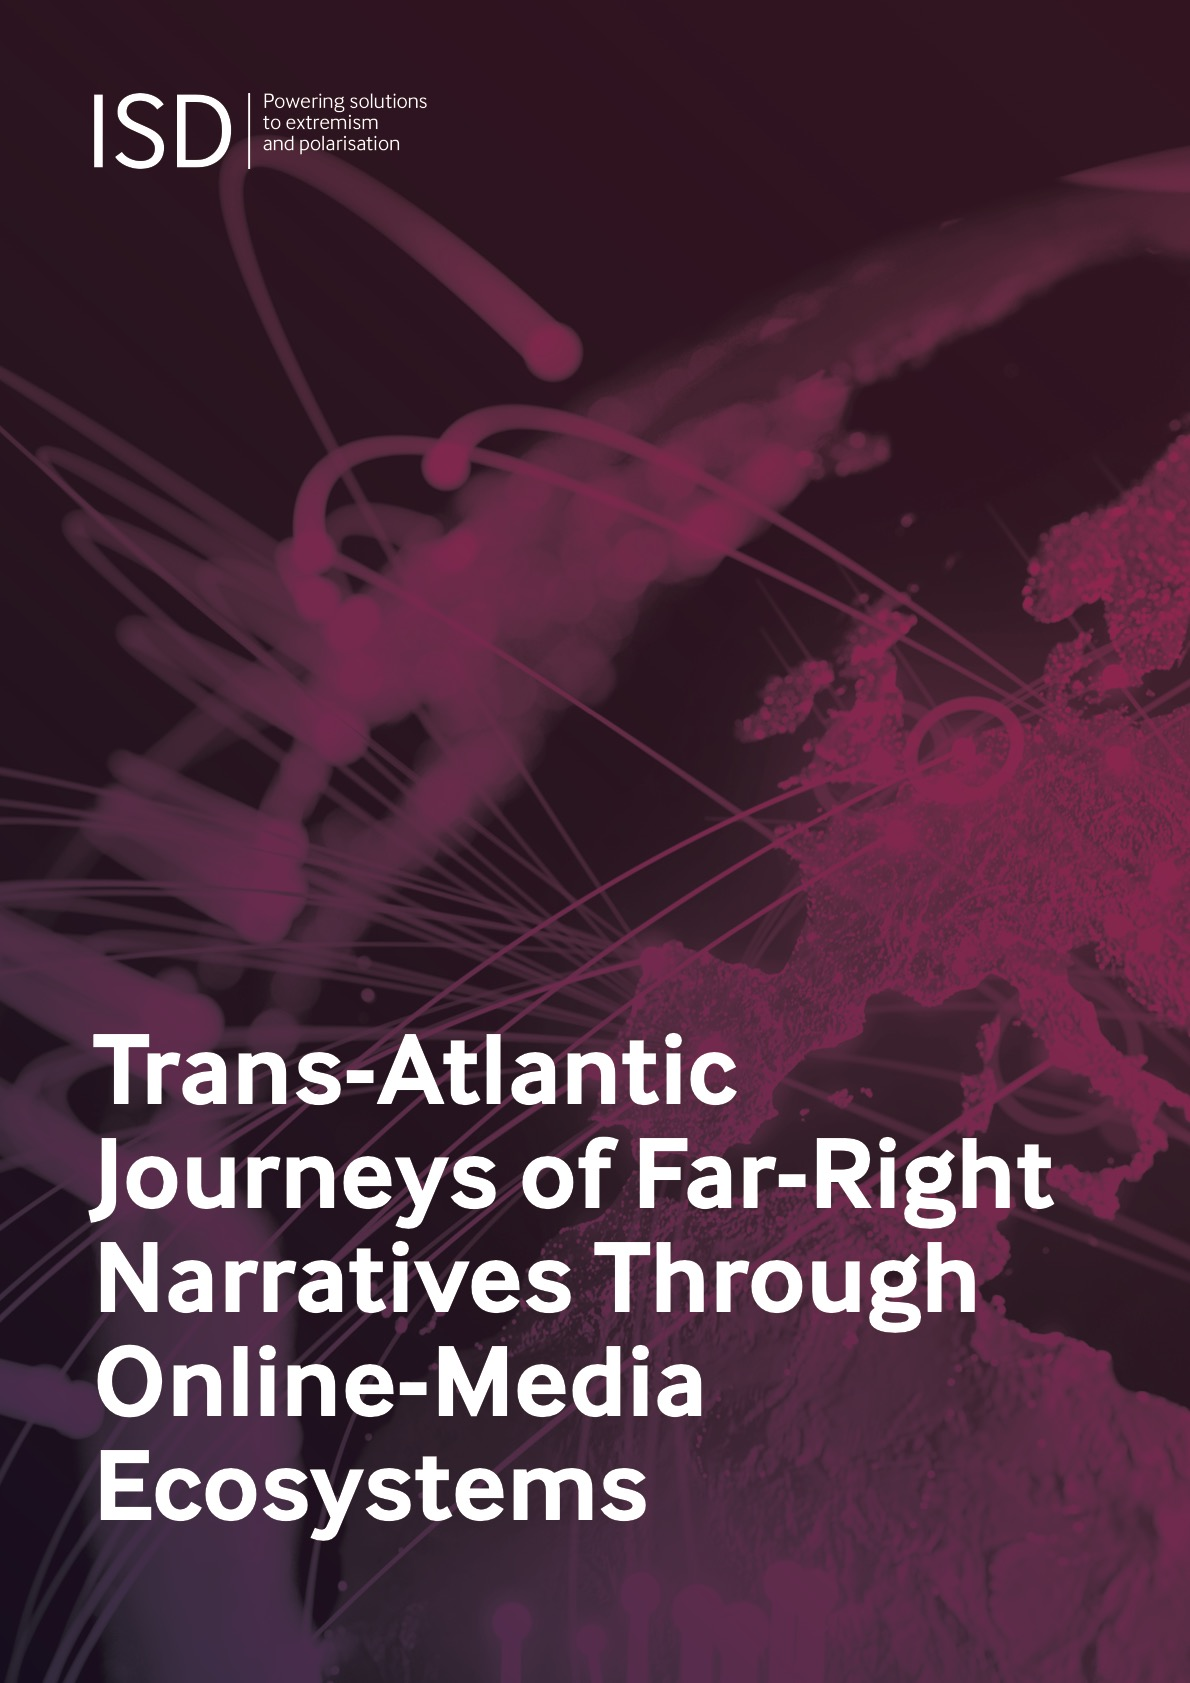 This research briefing explores if and how far-right narratives from the United States, France and Germany gain traction in domestic mainstream media, or move across borders between the US on the one hand, and France and Germany on the other. It tests whether far-right ideas start out in far-right alternative media but eventually move to the mainstream and whether far-right ideas spread between national media ecosystems.